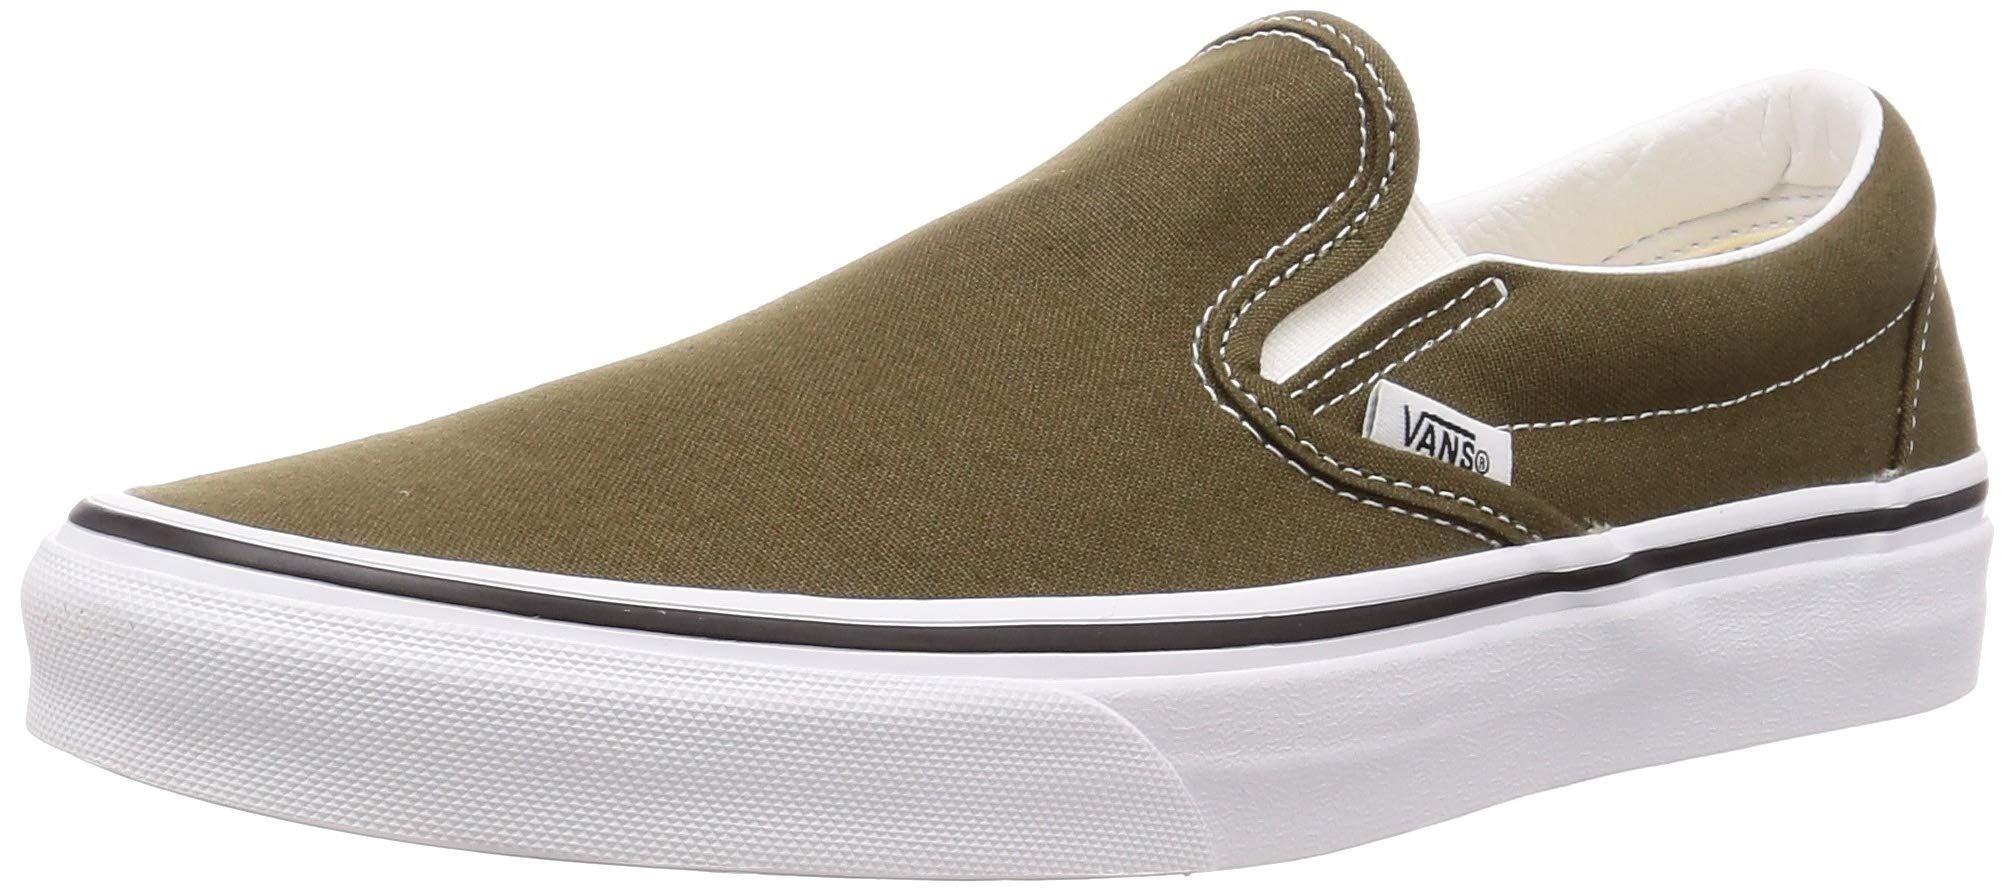 Vans Unisex Classic Slip-On Skate Shoe (8 Women/6.5 Men, Beech/True White) by Vans